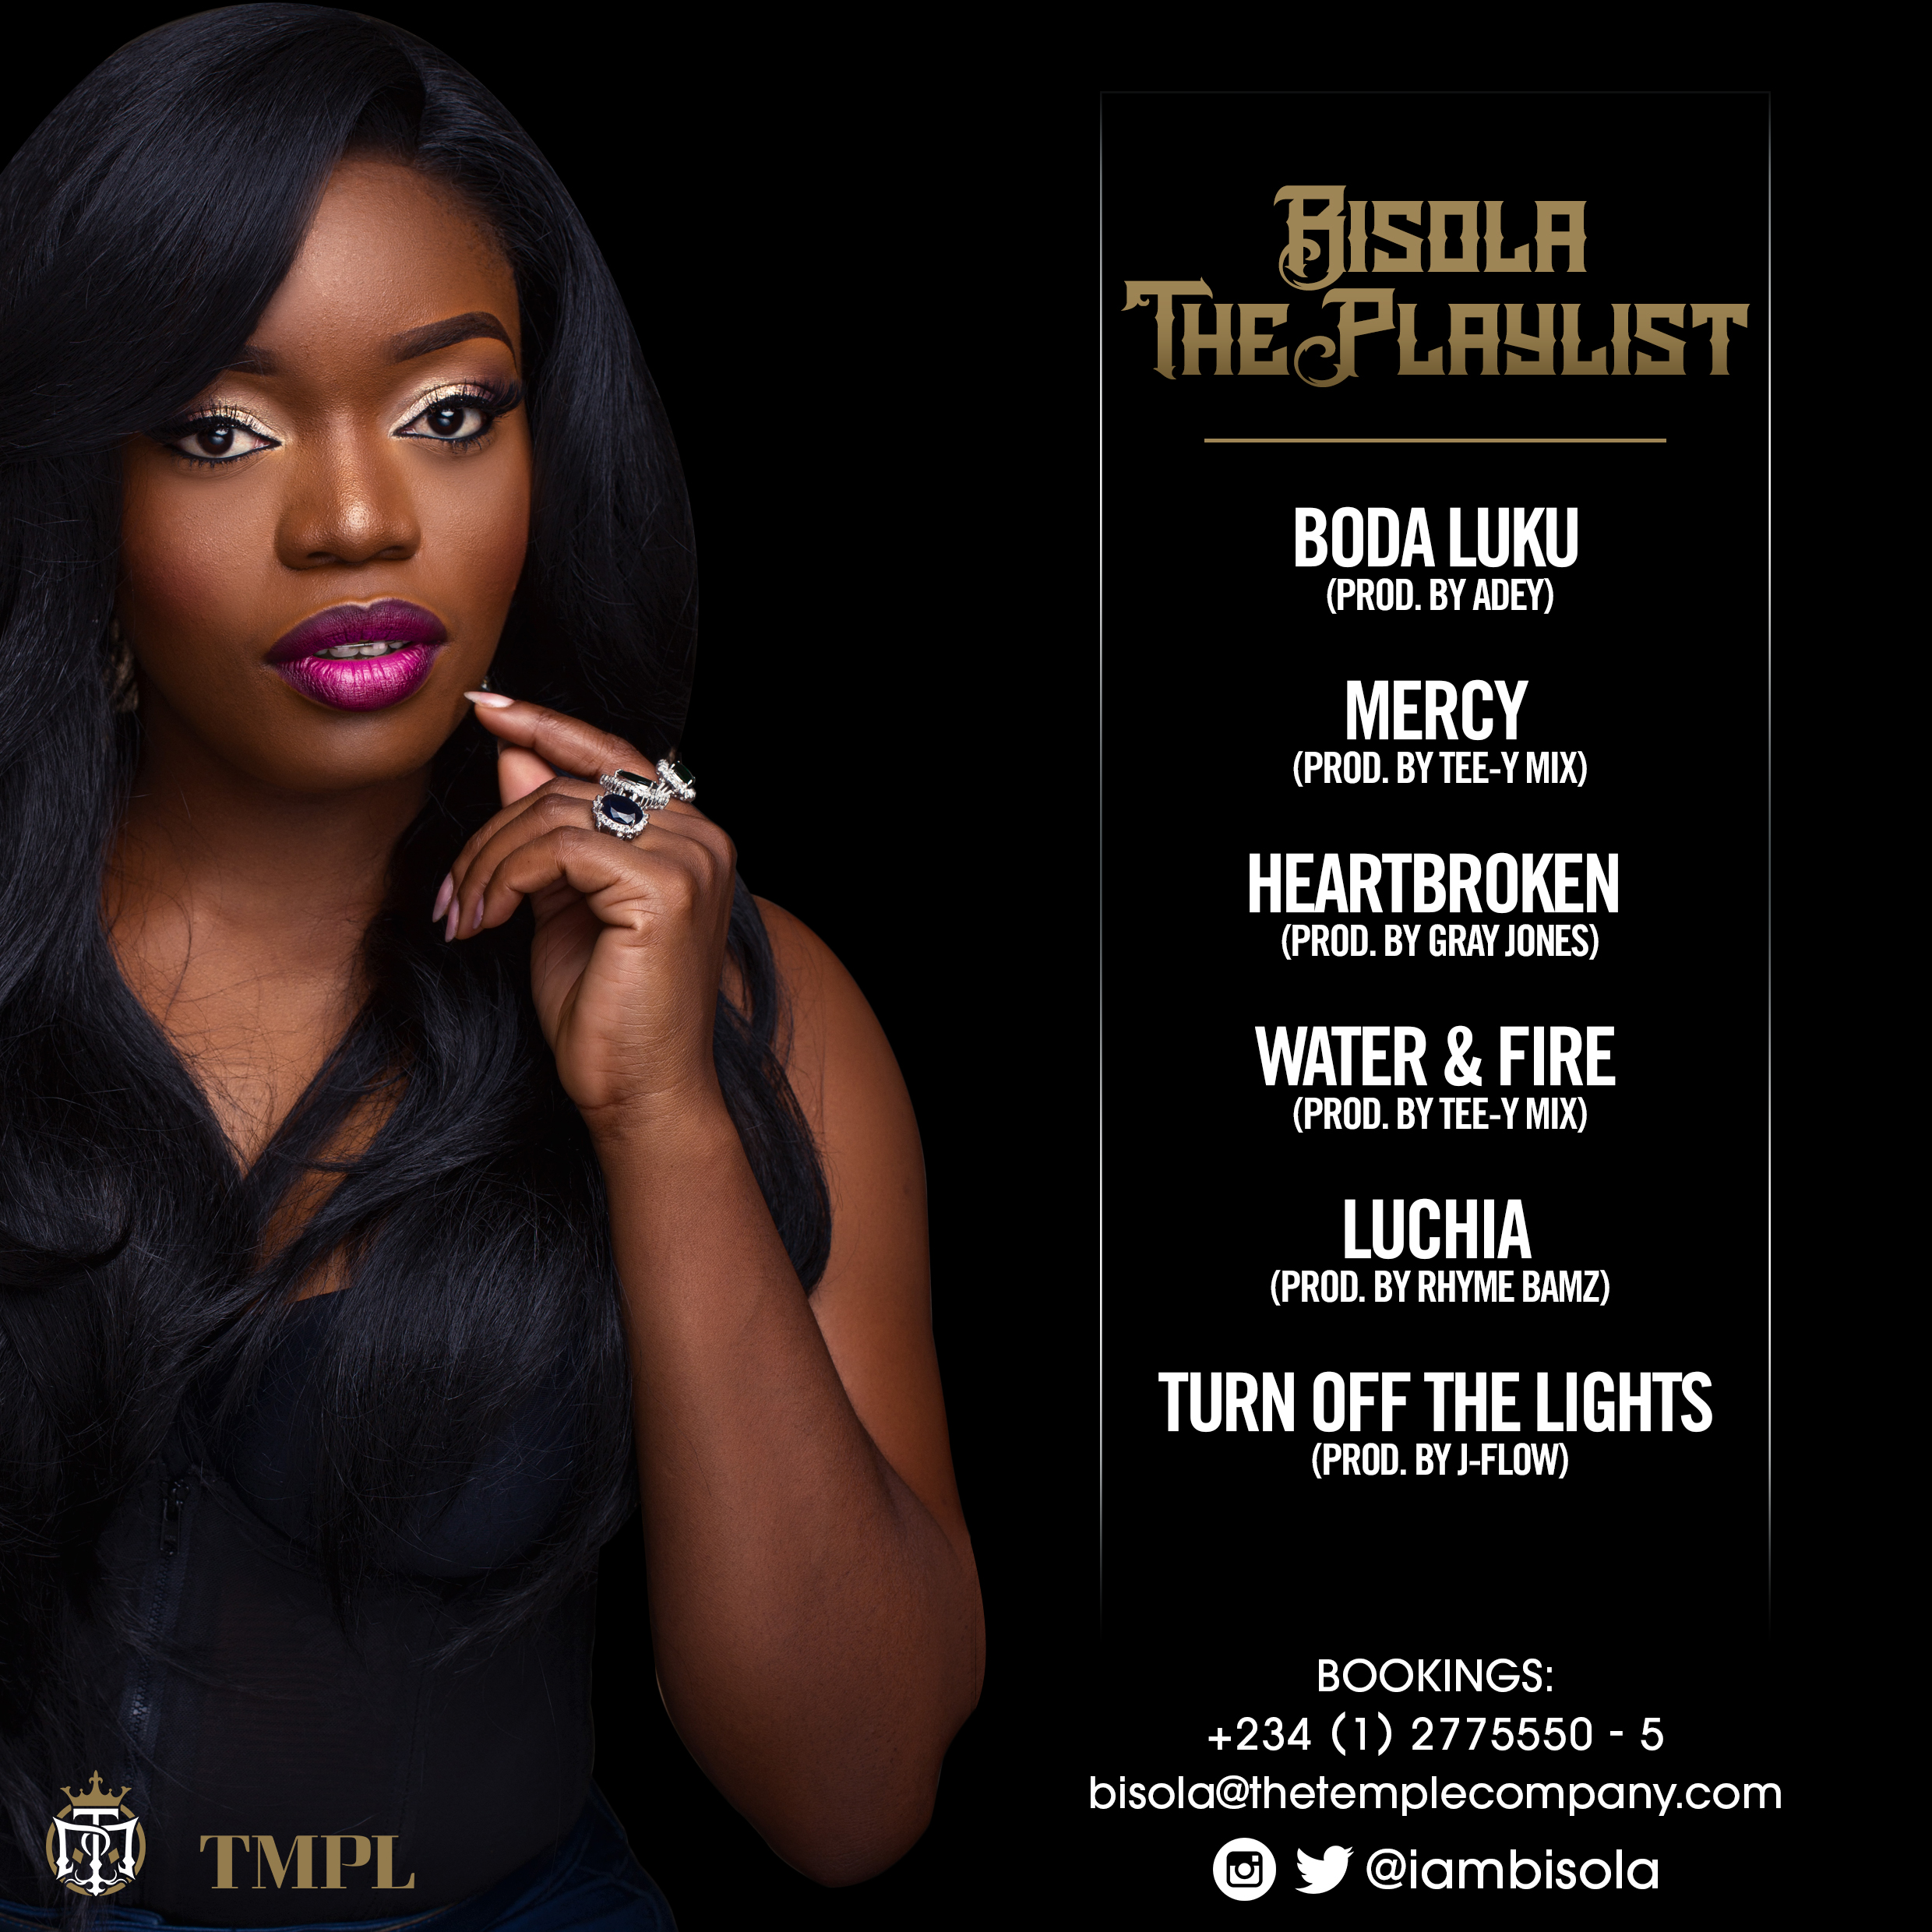 Bisola aiyeola the playlist ep style rave